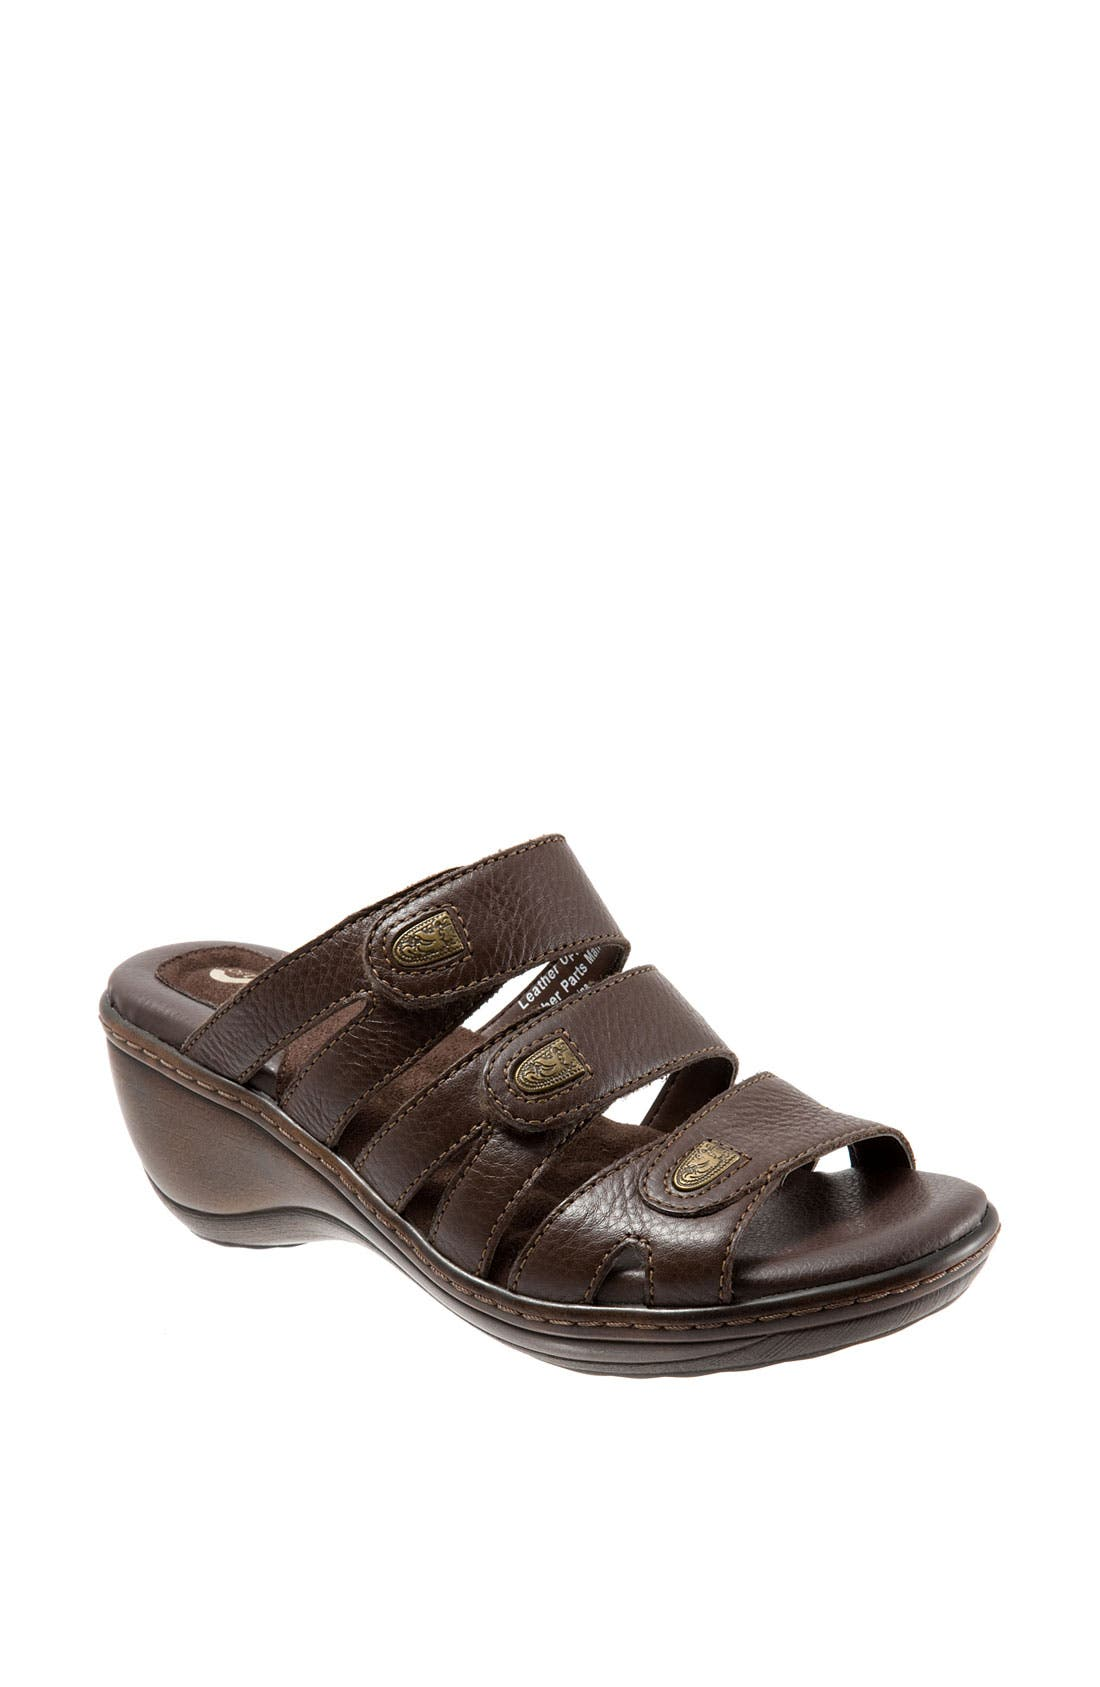 Alternate Image 1 Selected - SoftWalk® 'Macon' Sandal